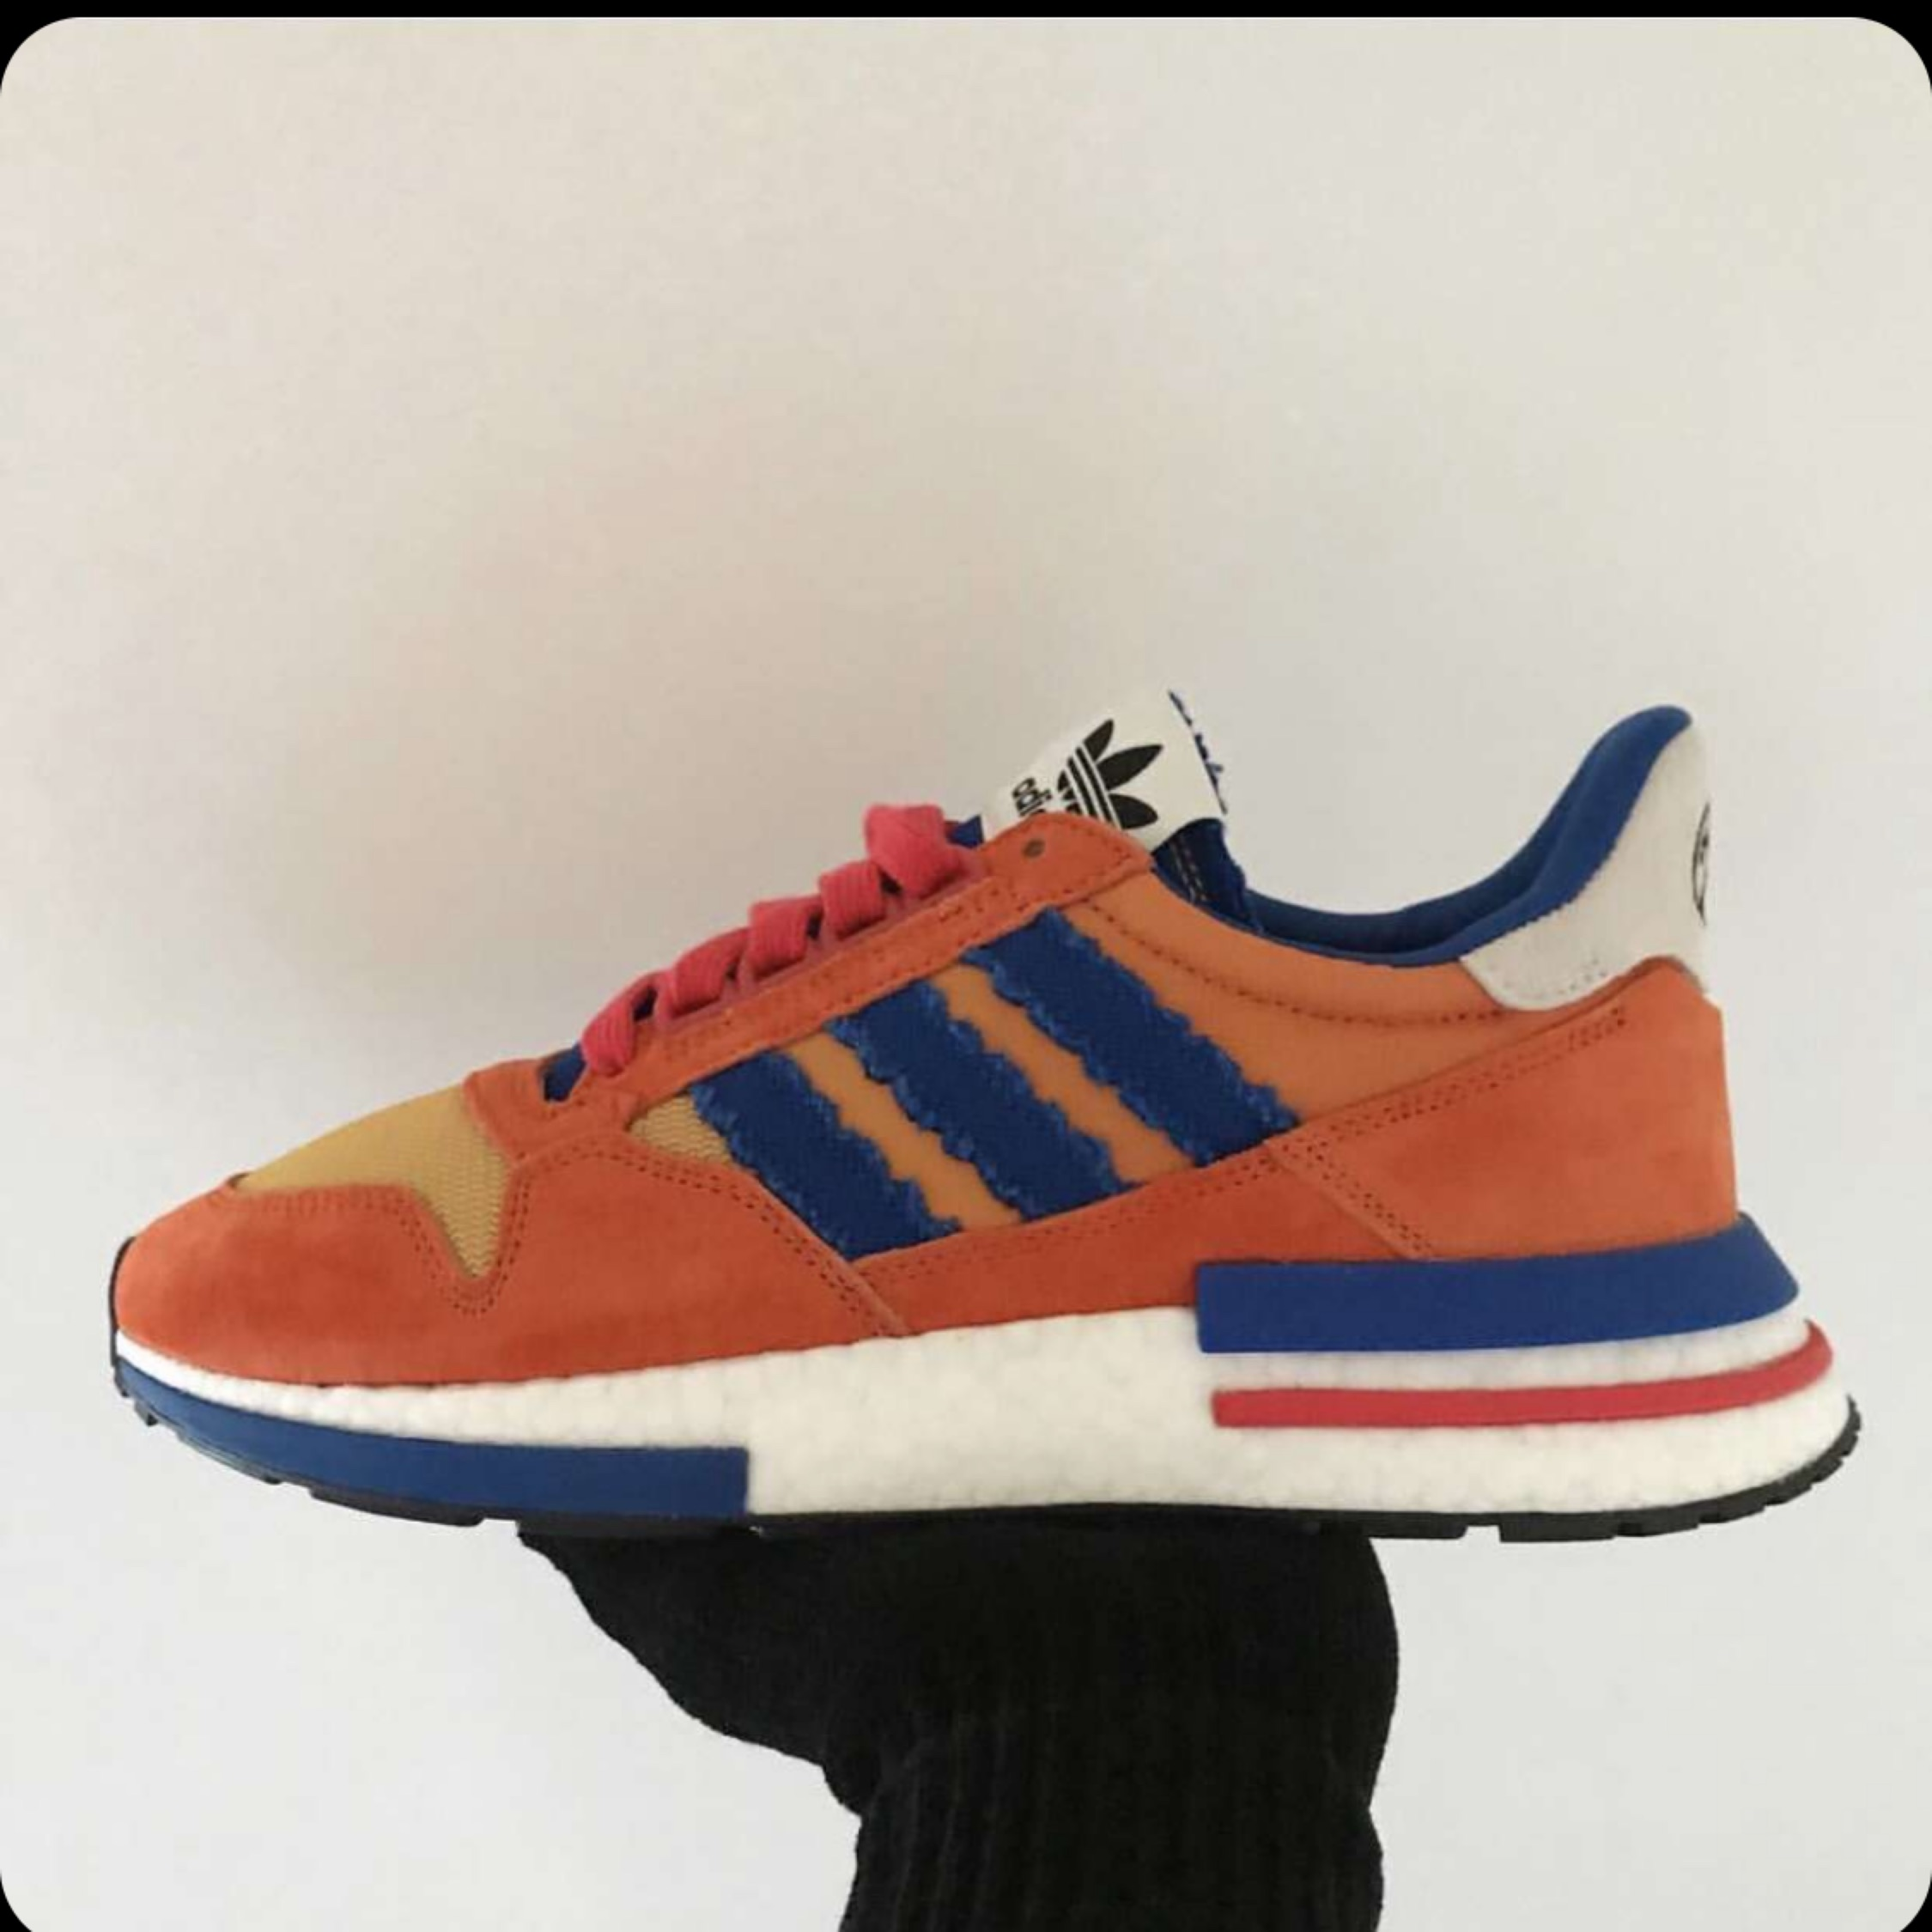 competitive price a3c11 c4c0f Adidas X Dragon Ball Z